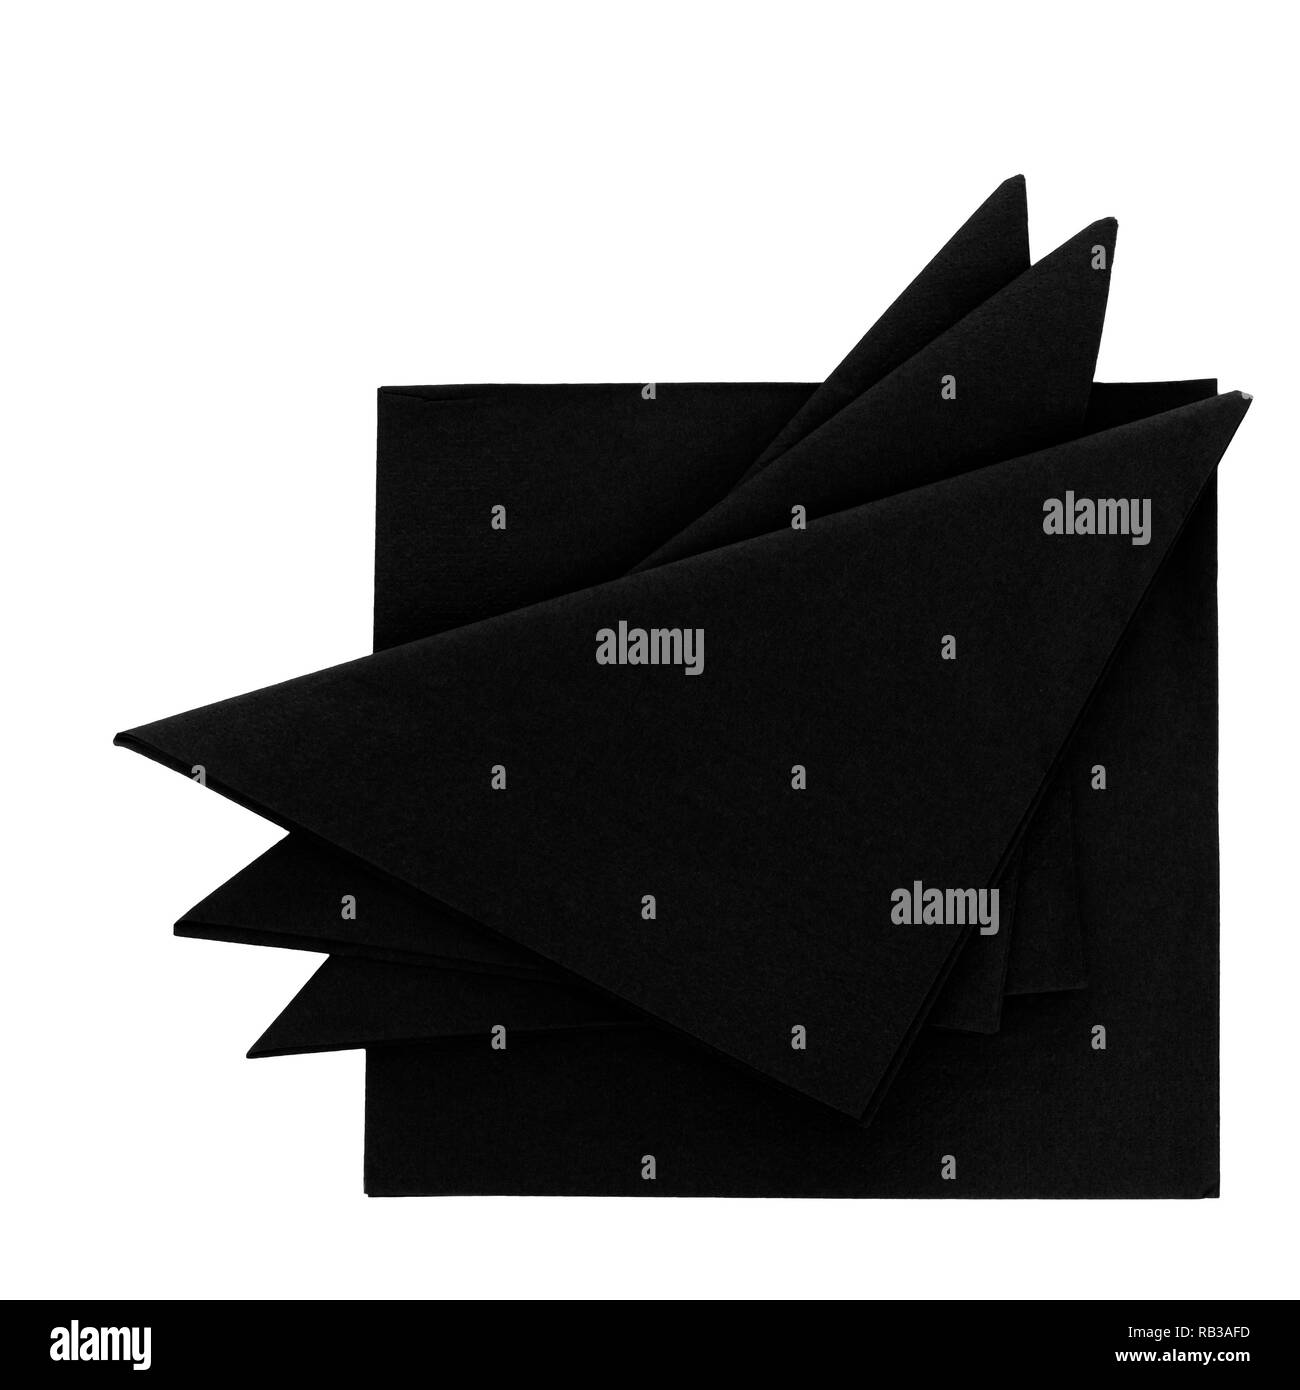 Black paper serviettes, napkins isolated on white. For funeral, wake etc. - Stock Image